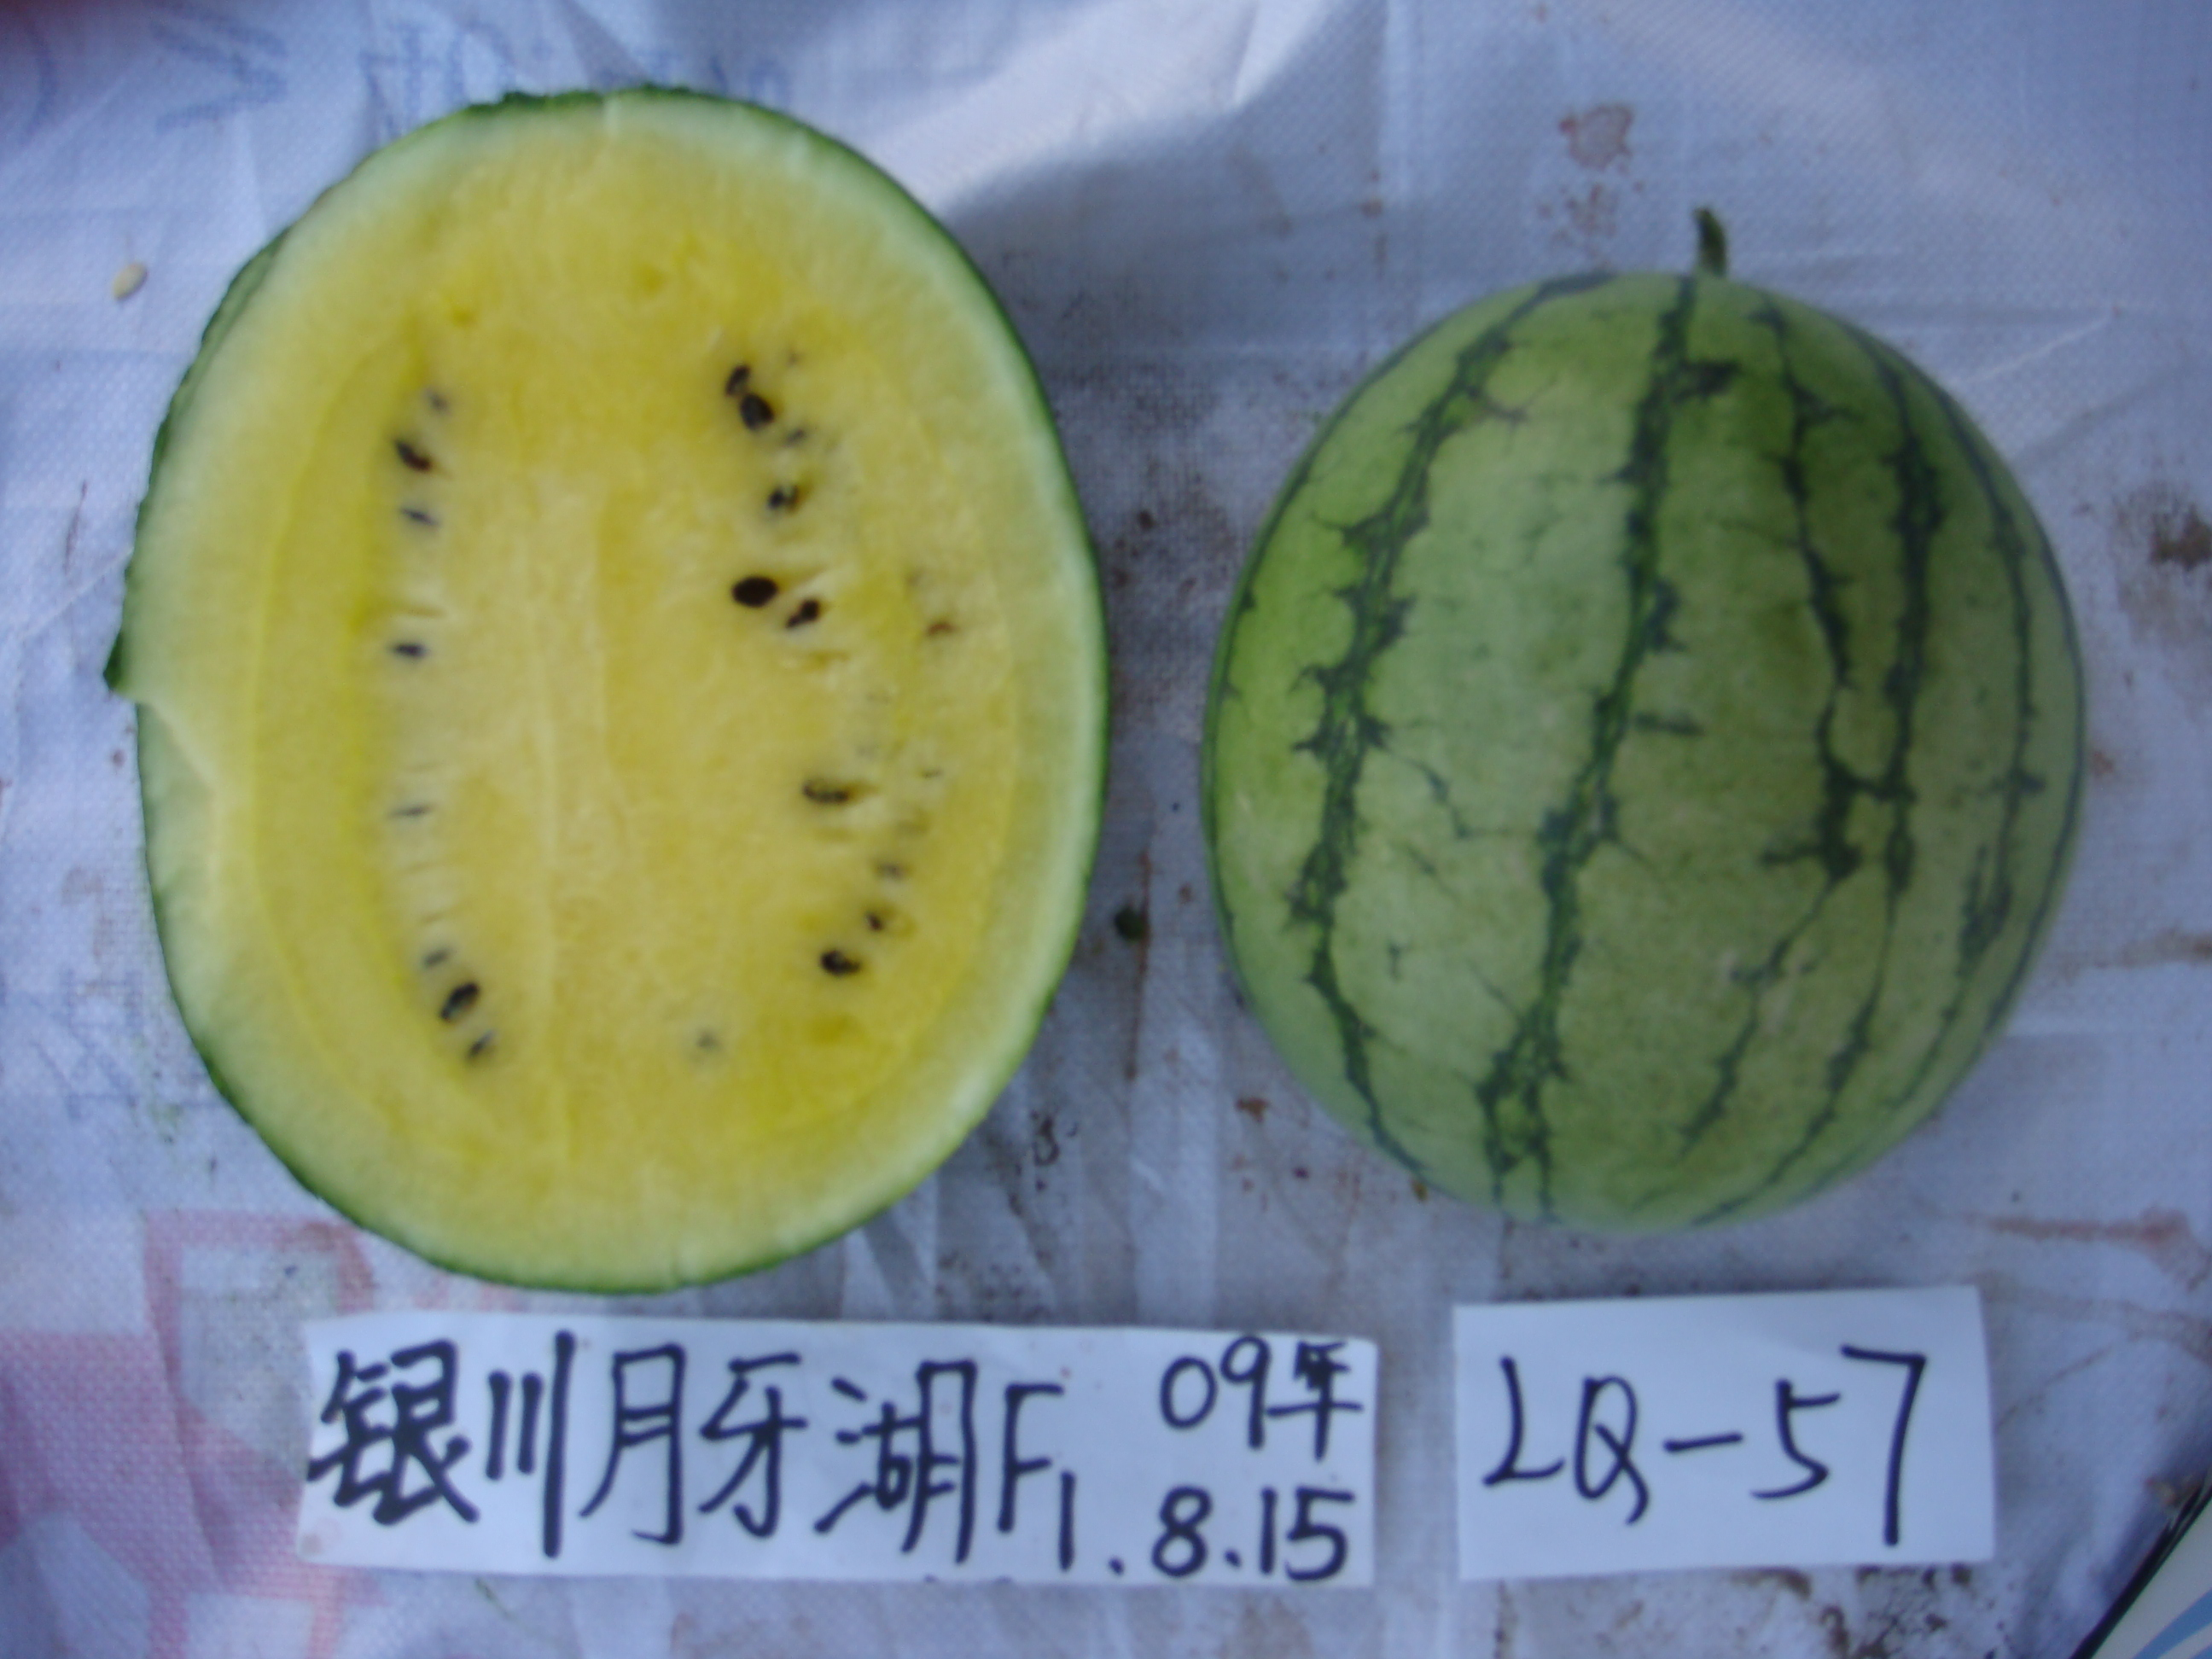 Yellow Flesh Watermelon Seeds for Planting